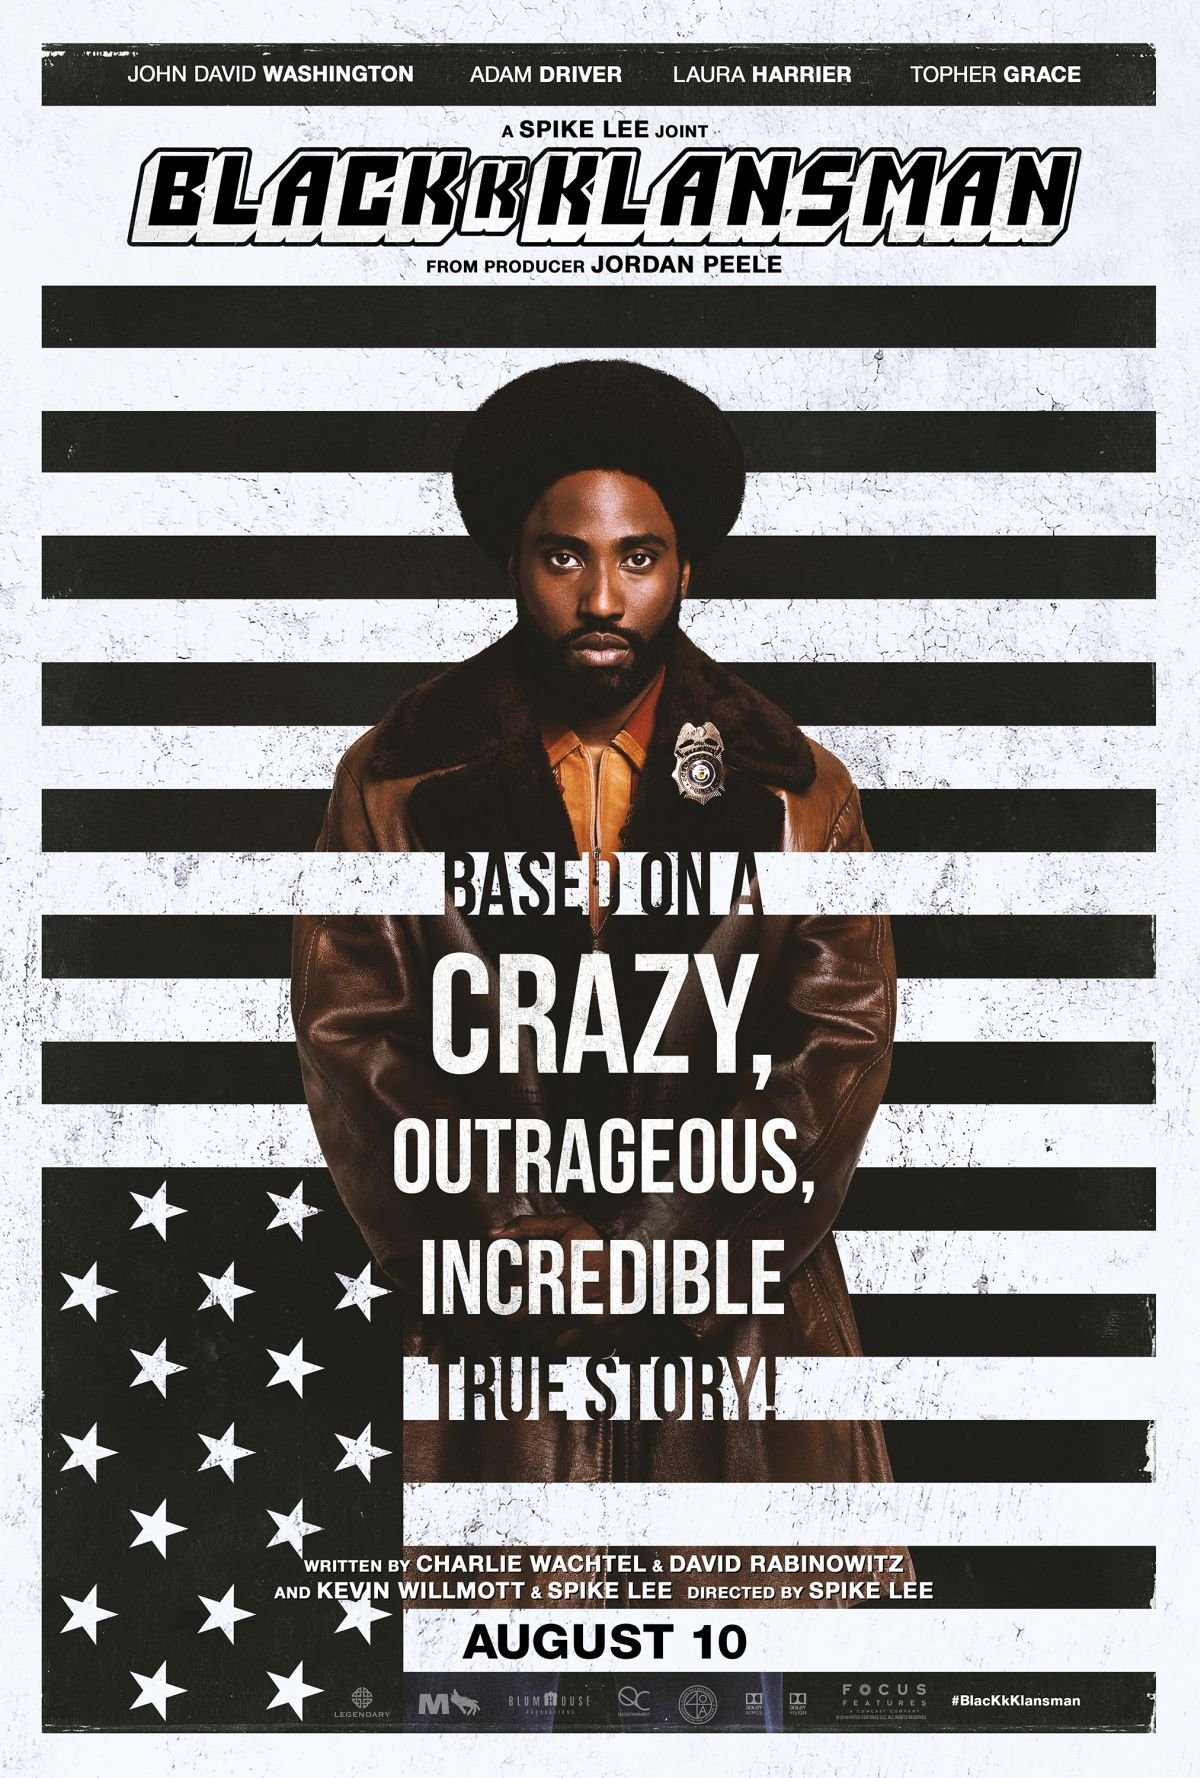 Three BlacKkKlansman Clips Reveal Undercover Truths ...